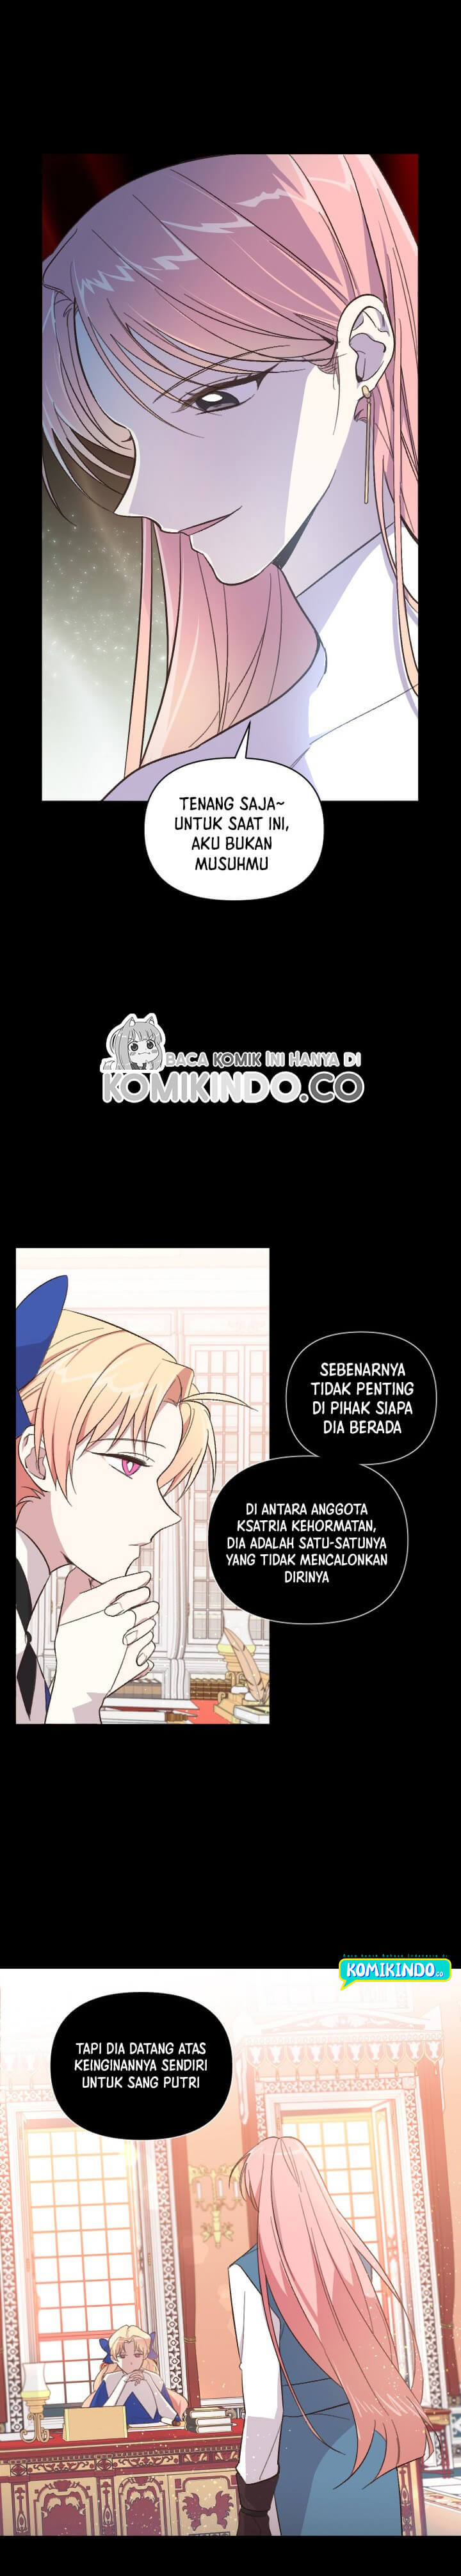 Asirhart Kingdom Aide Chapter 16